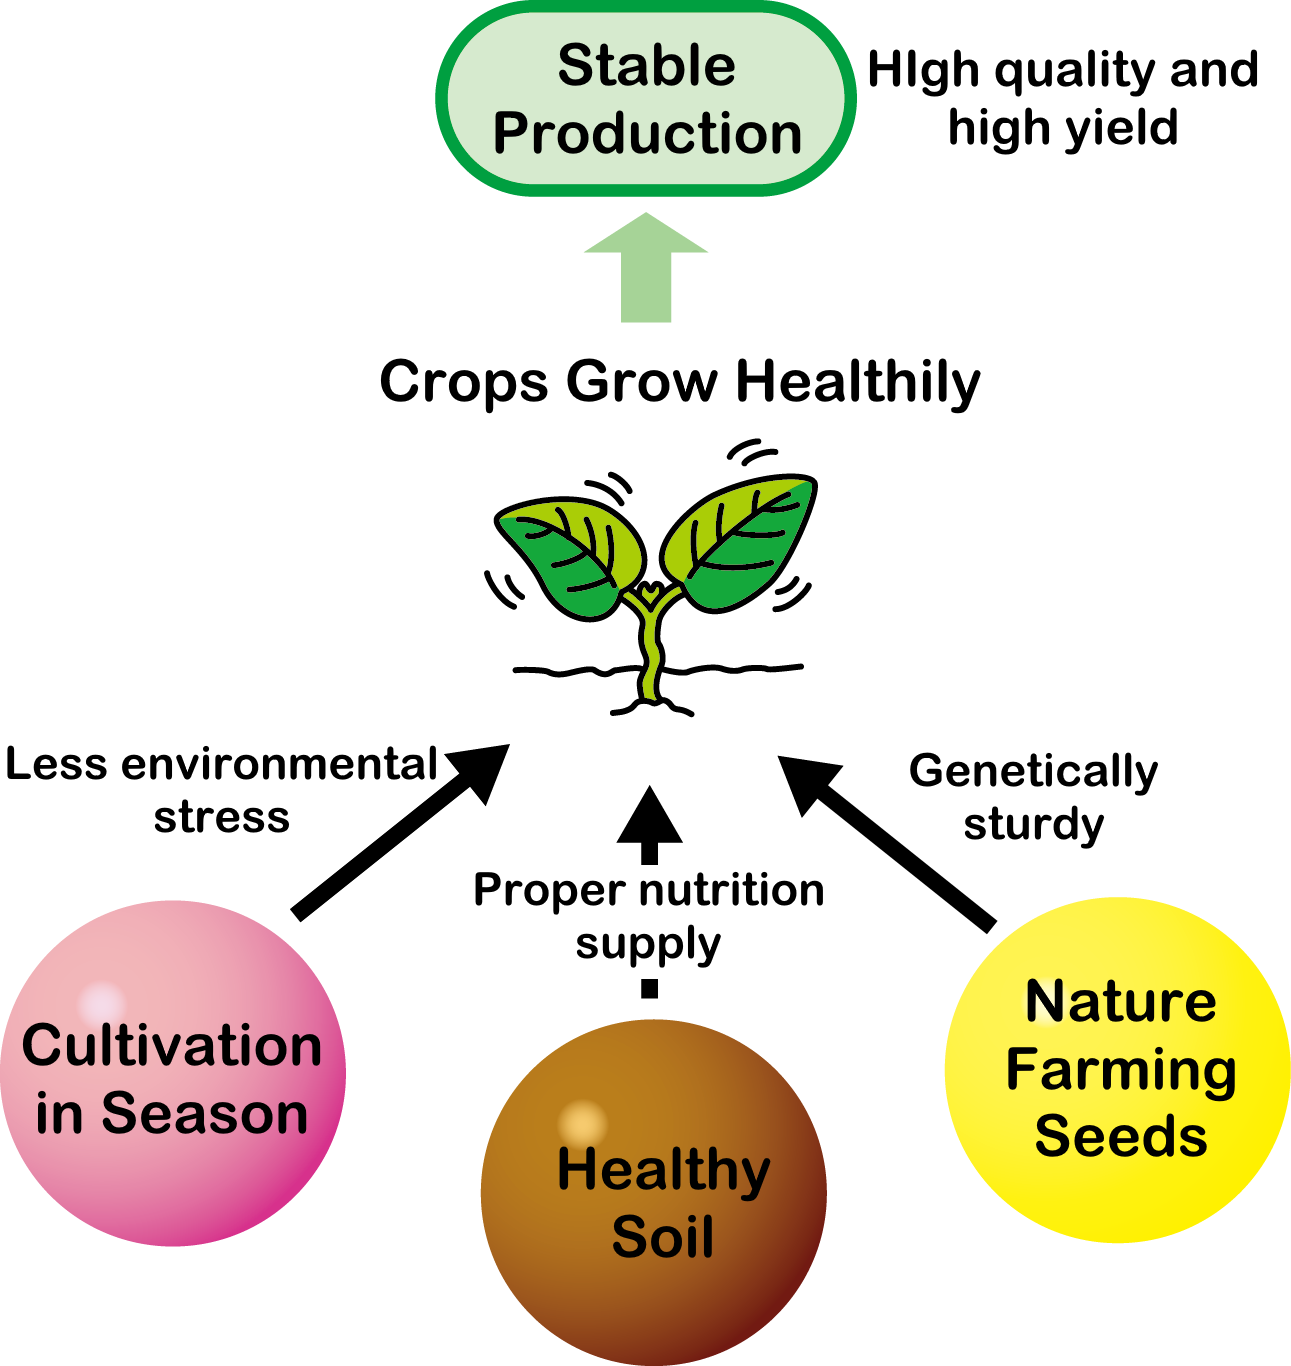 Keys to stable crop production